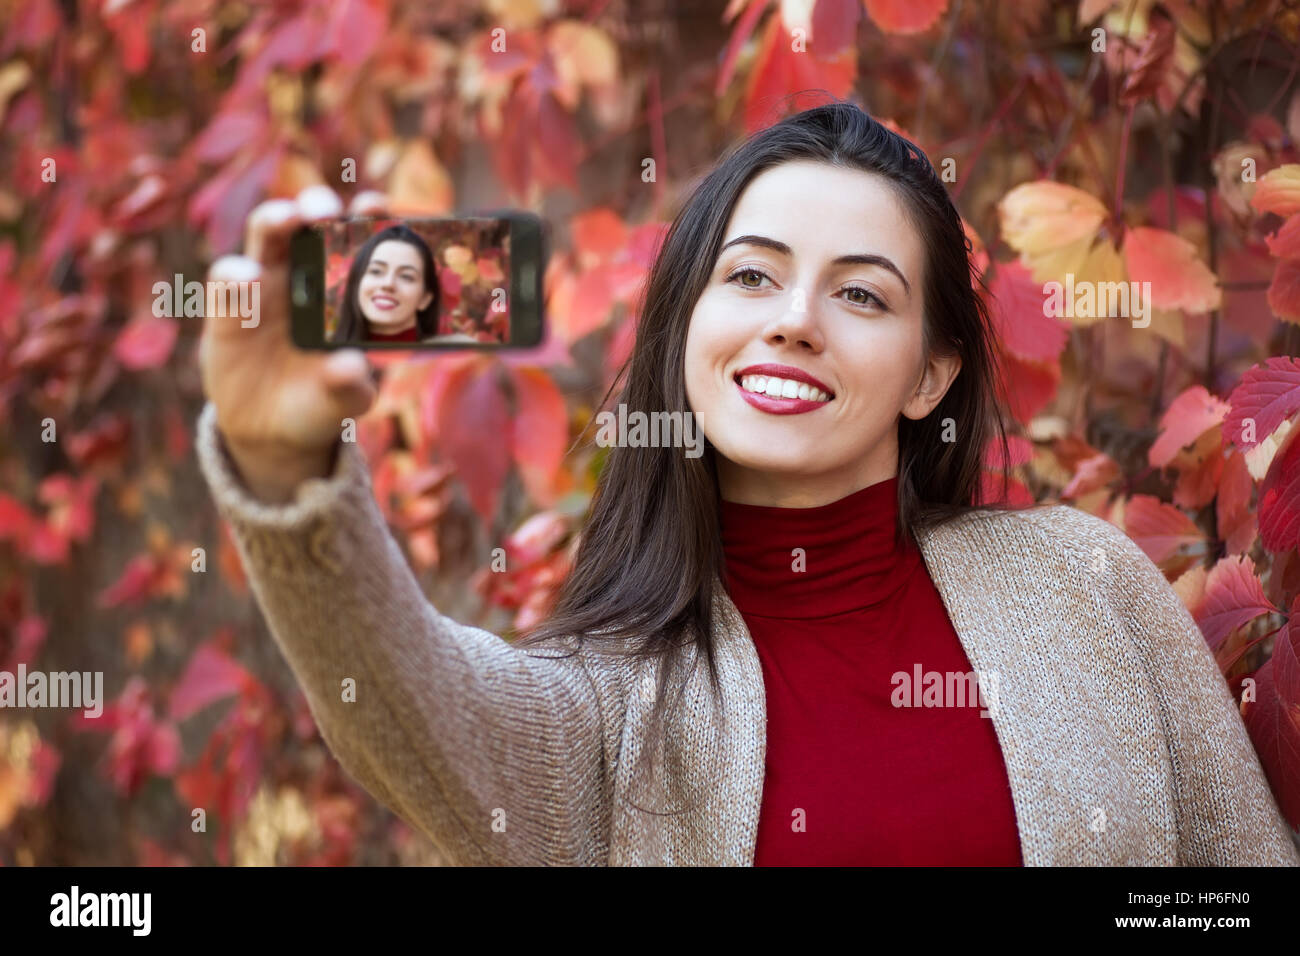 Beautiful young brunette caucasian woman taking selfie with smartphone outdoors in park in autumn. Selfie autumn. - Stock Image